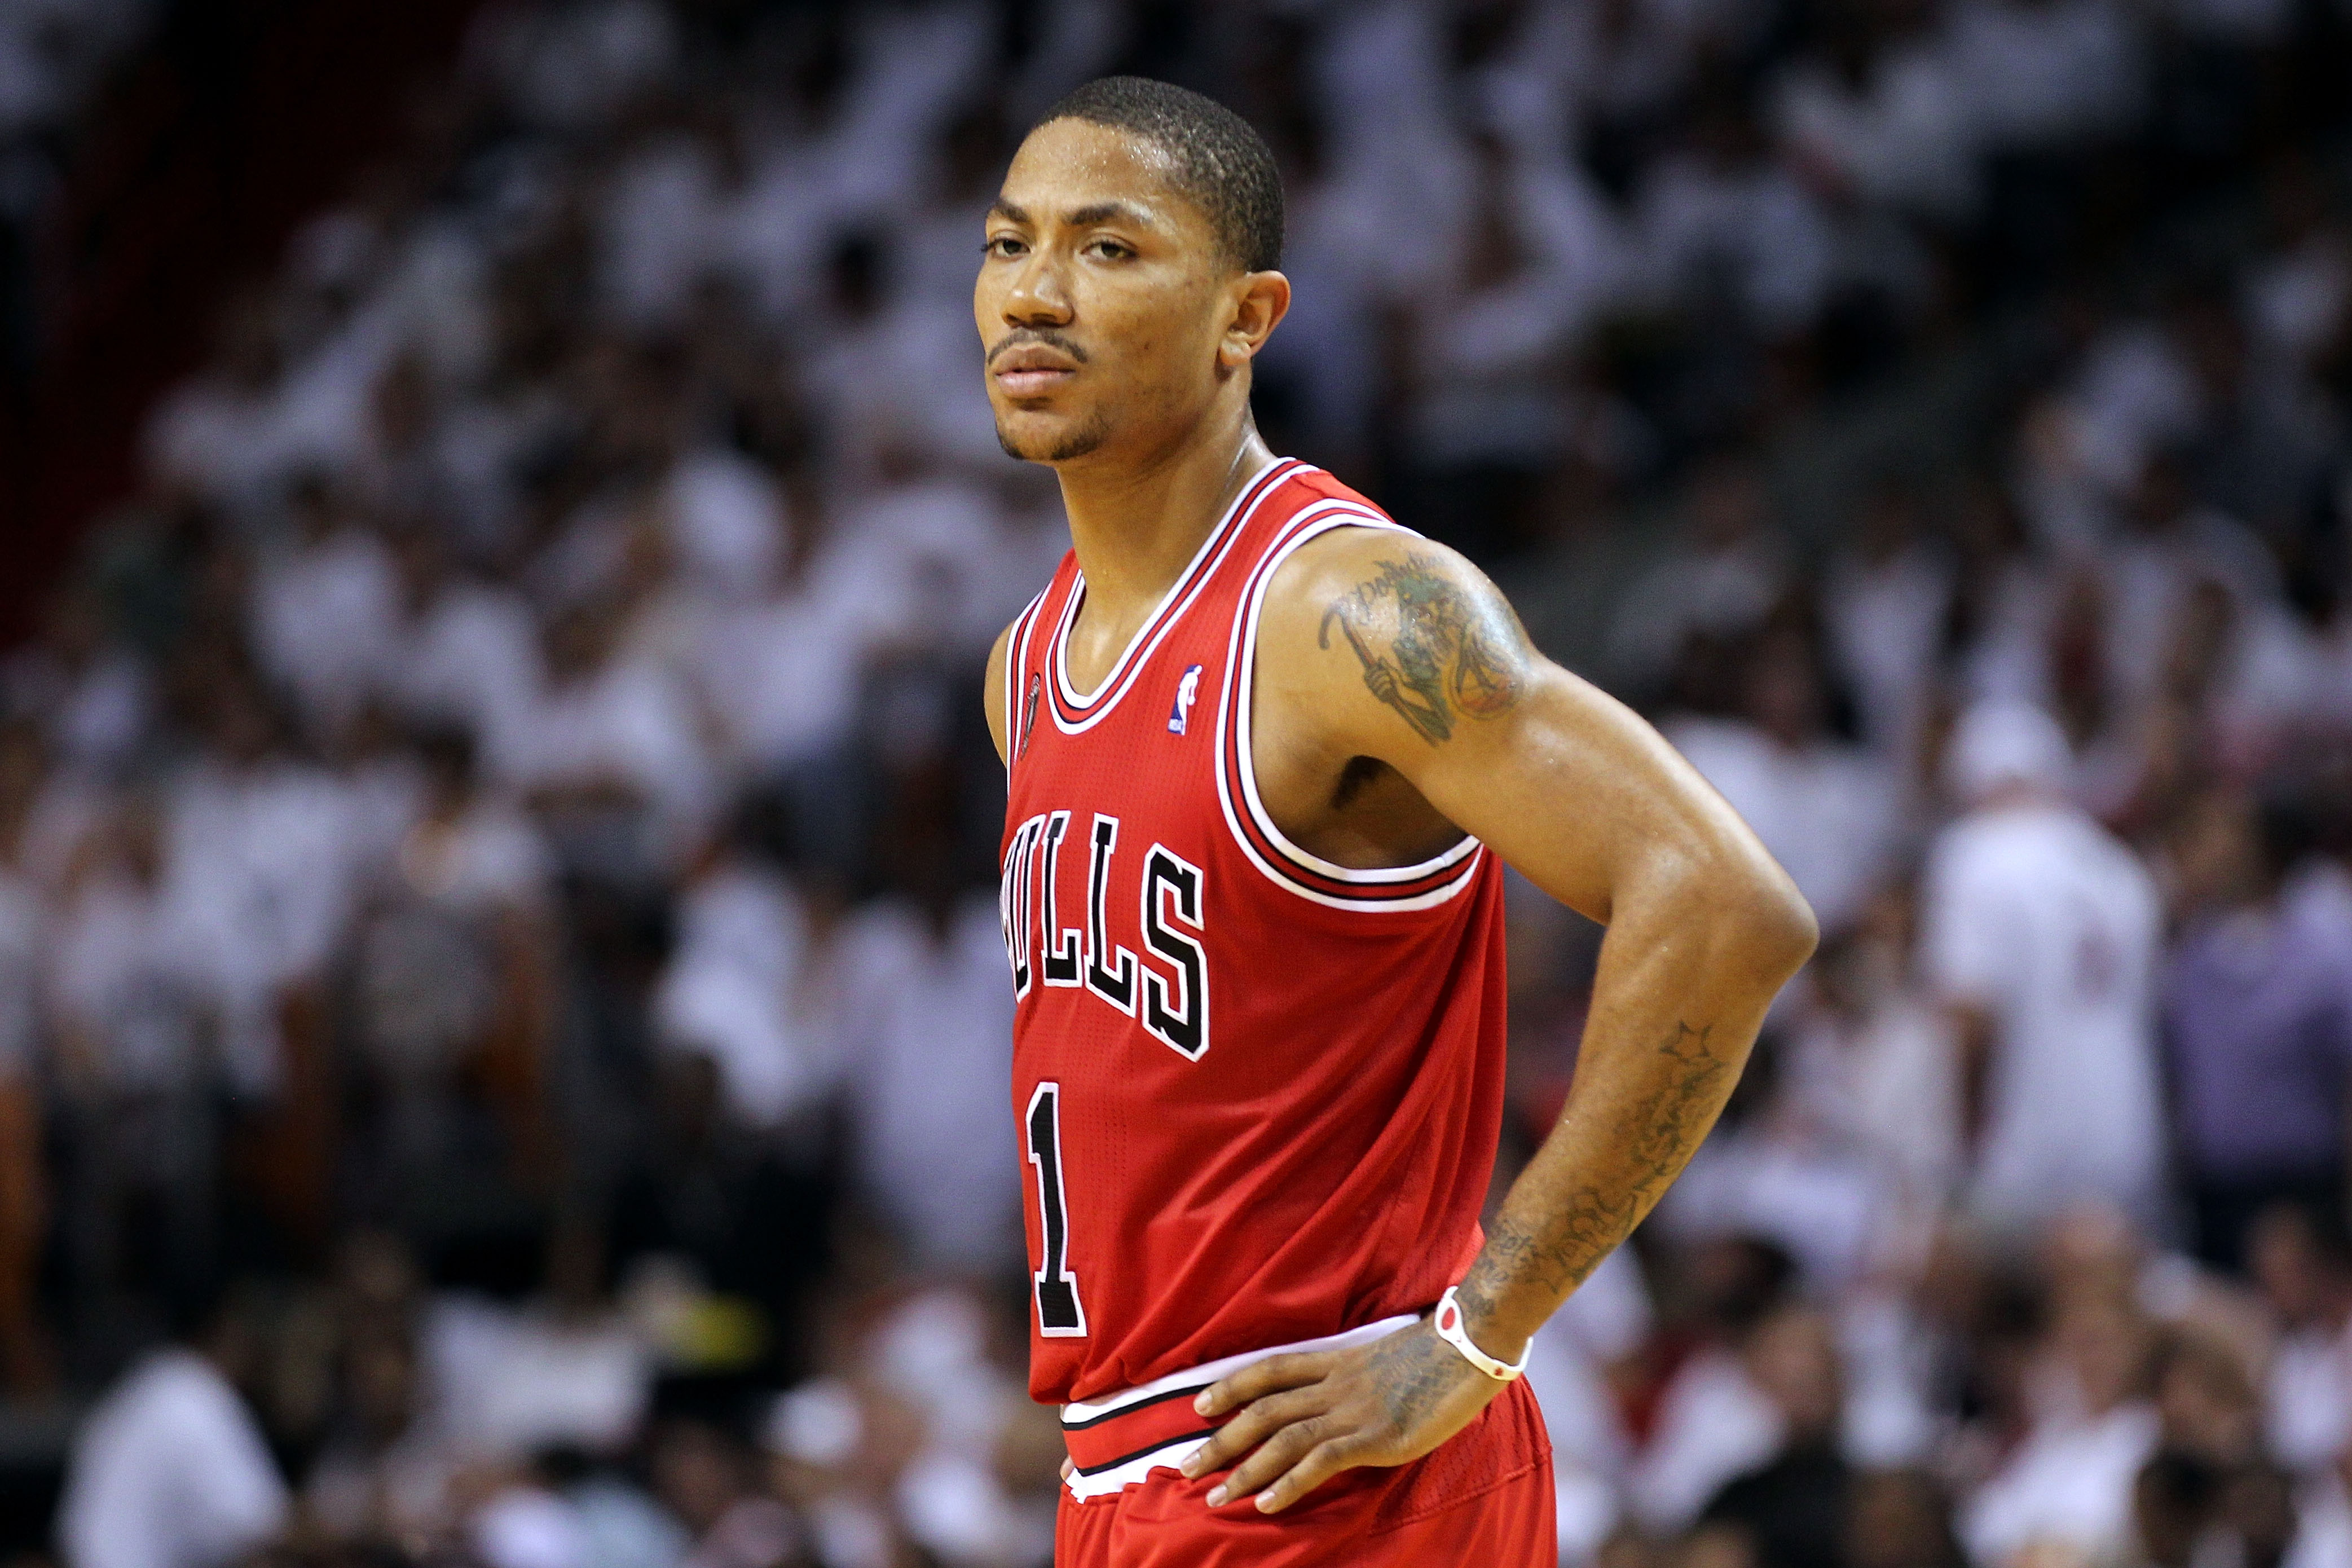 MIAMI, FL - MAY 24:  Derrick Rose #1 of the Chicago Bulls looks on against the Miami Heat in Game Four of the Eastern Conference Finals during the 2011 NBA Playoffs on May 24, 2011 at American Airlines Arena in Miami, Florida. NOTE TO USER: User expressly